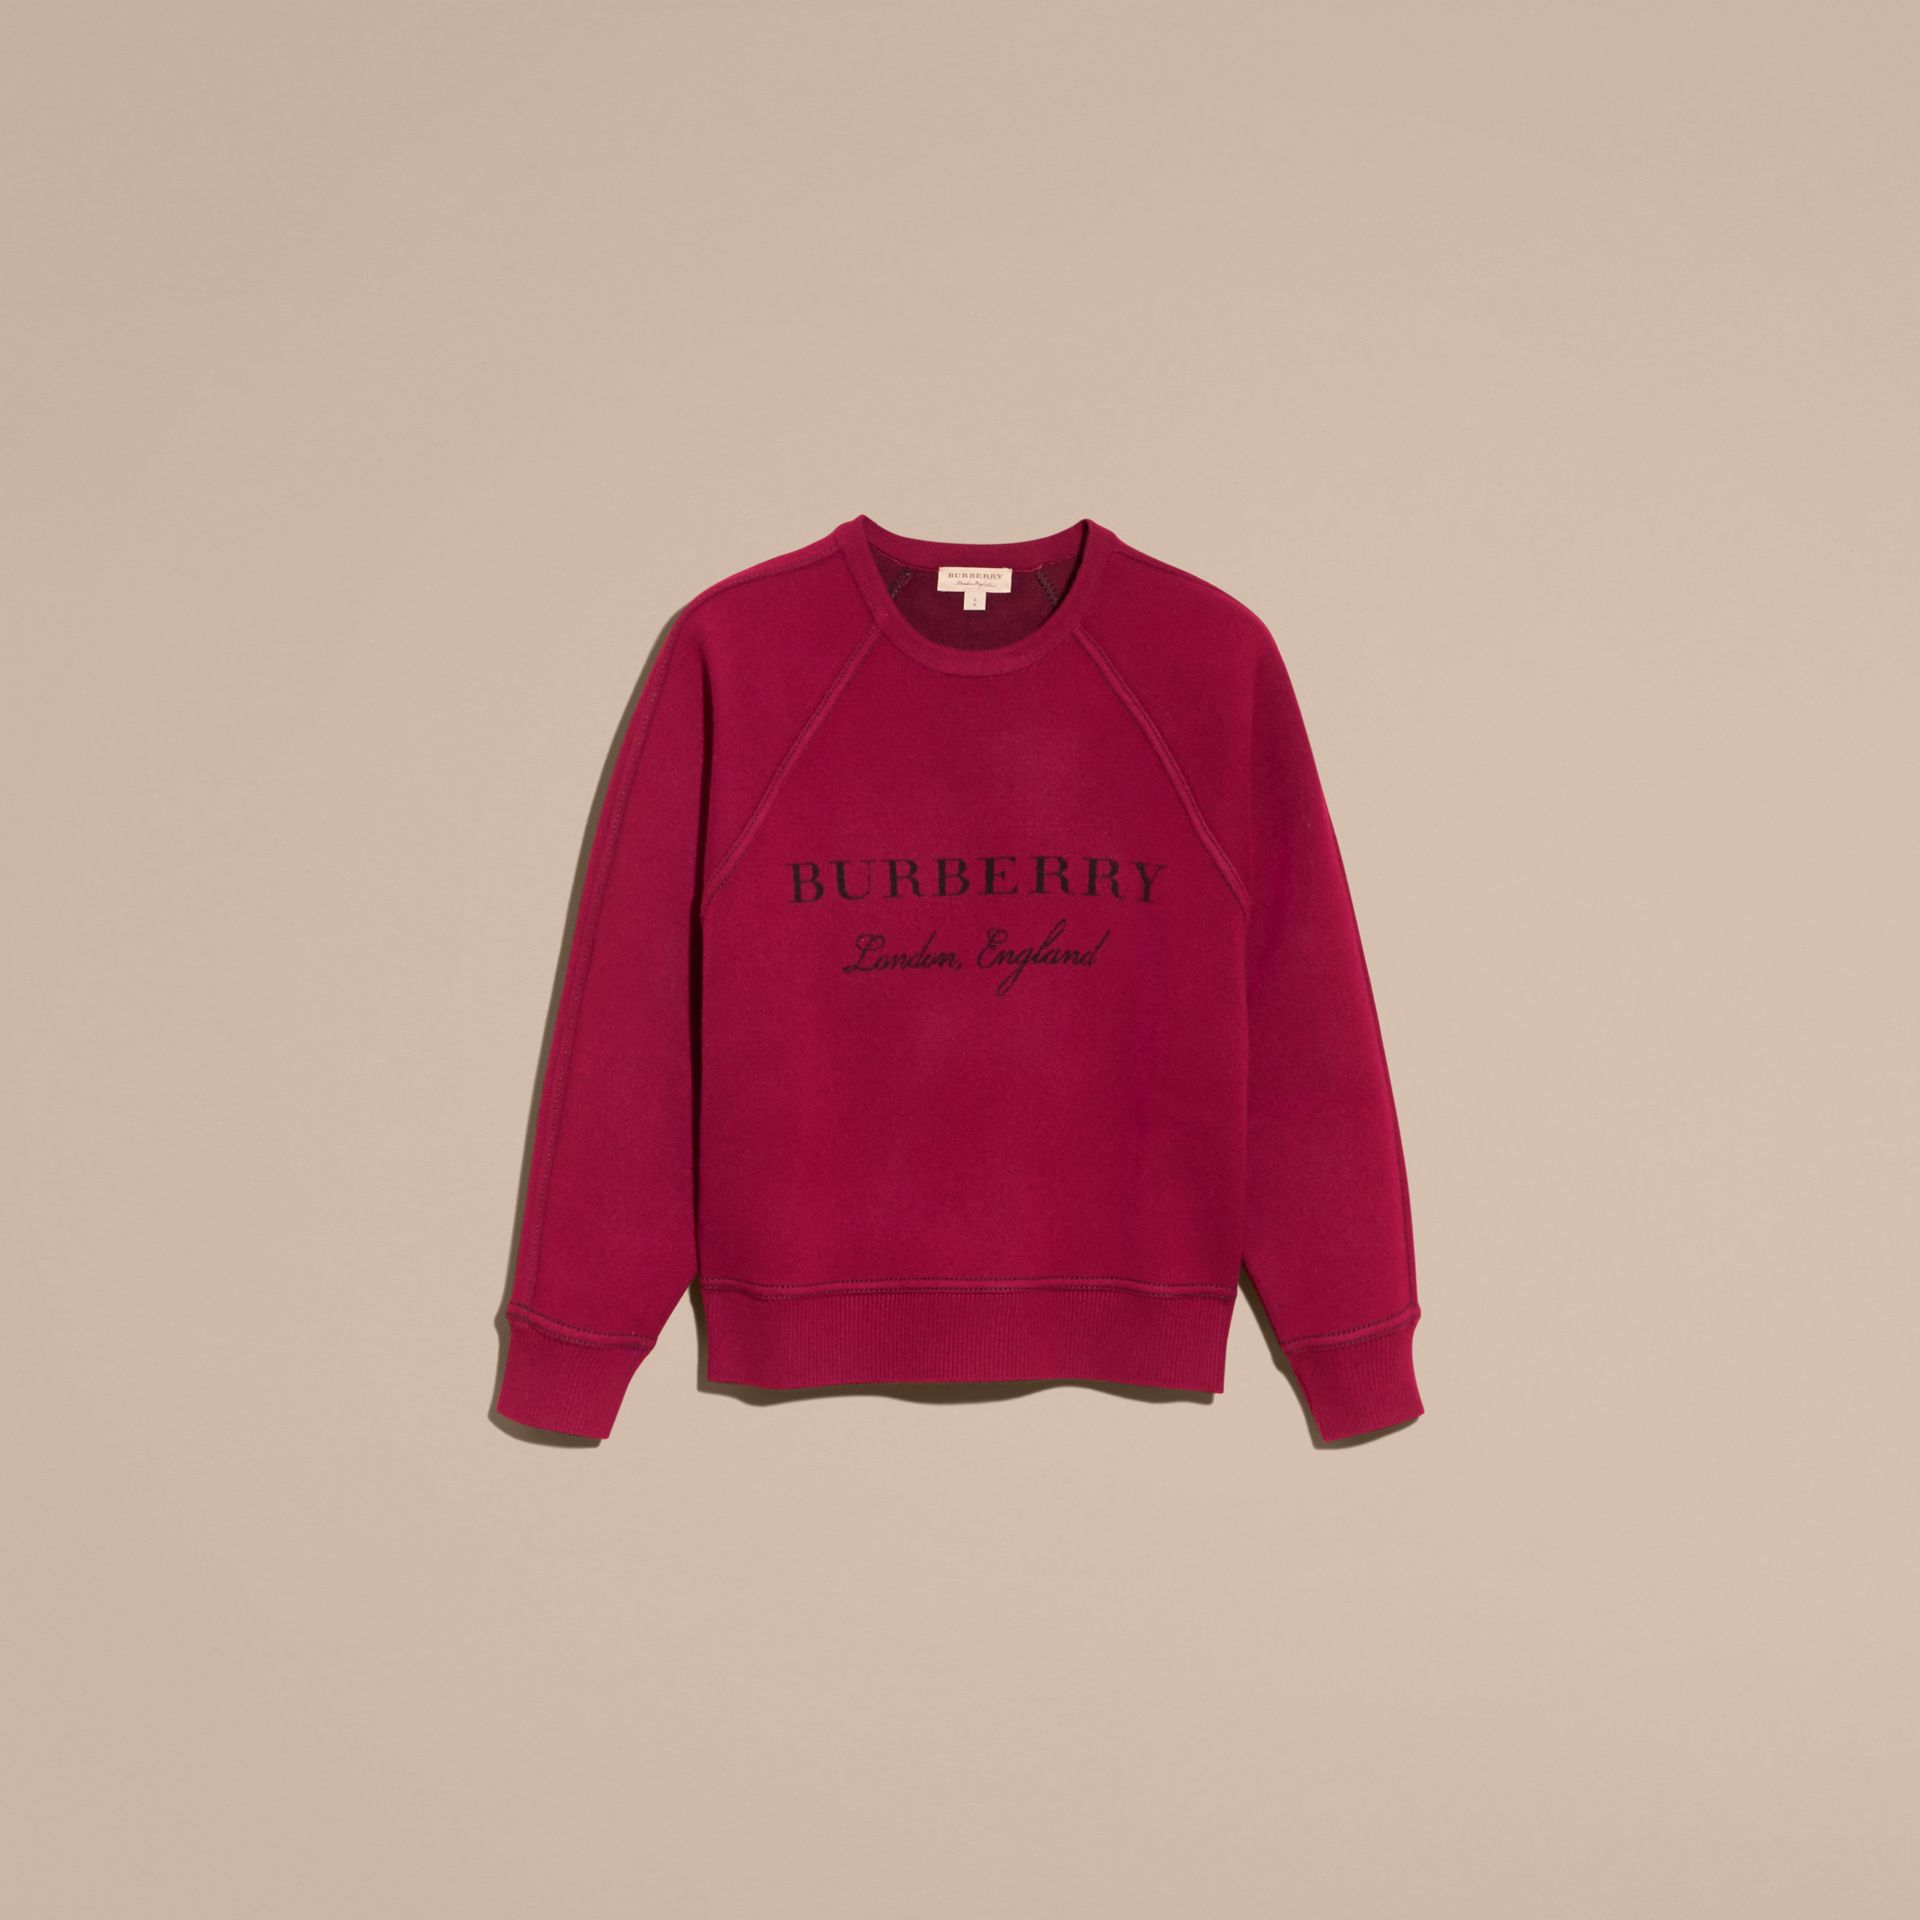 Topstitch Detail Wool Cashmere Blend Sweater in Burgundy - Women | Burberry Canada - gallery image 4